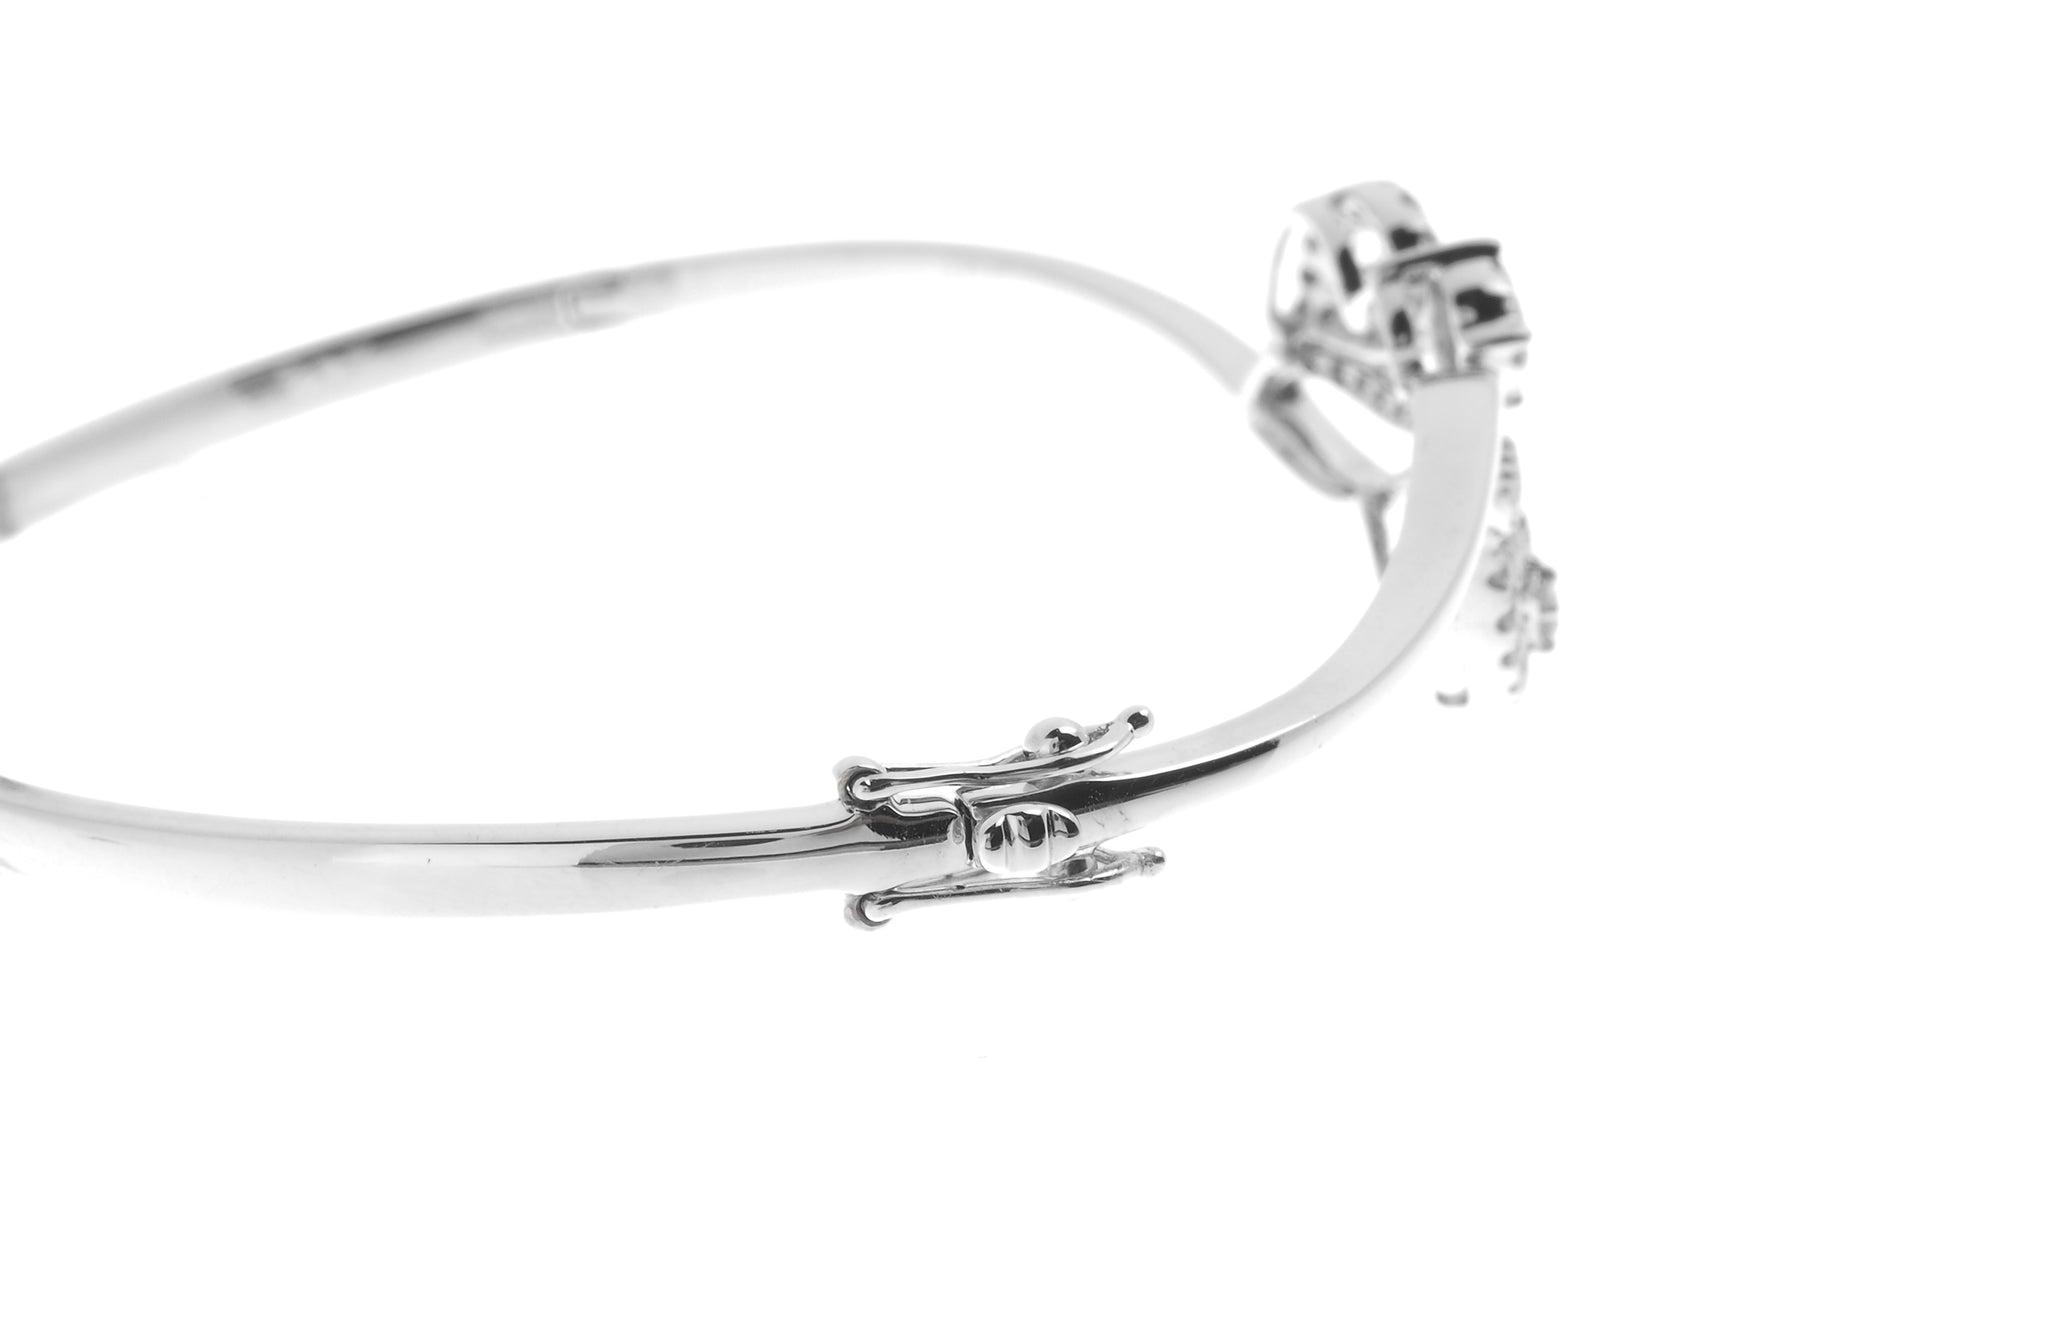 18ct White Gold Diamond Bangle with clasp (MCS2723) - Clasp